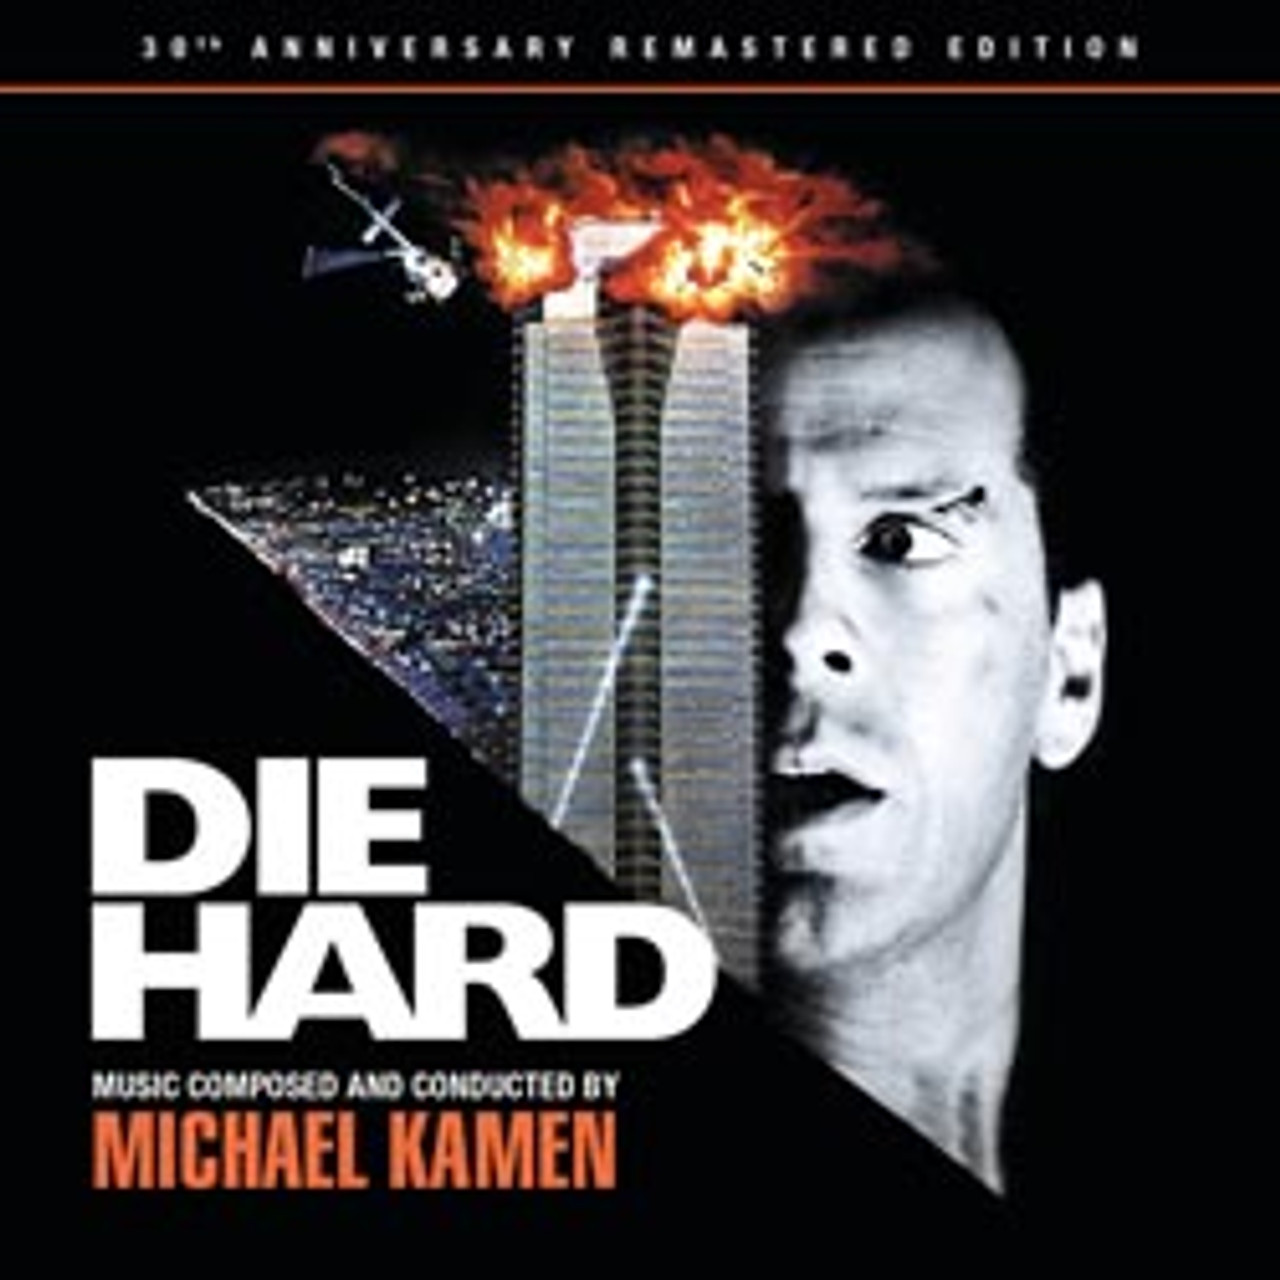 DIE HARD: 30th ANNIVERSARY REMASTERED LIMITED EDITION (3 CD SET)